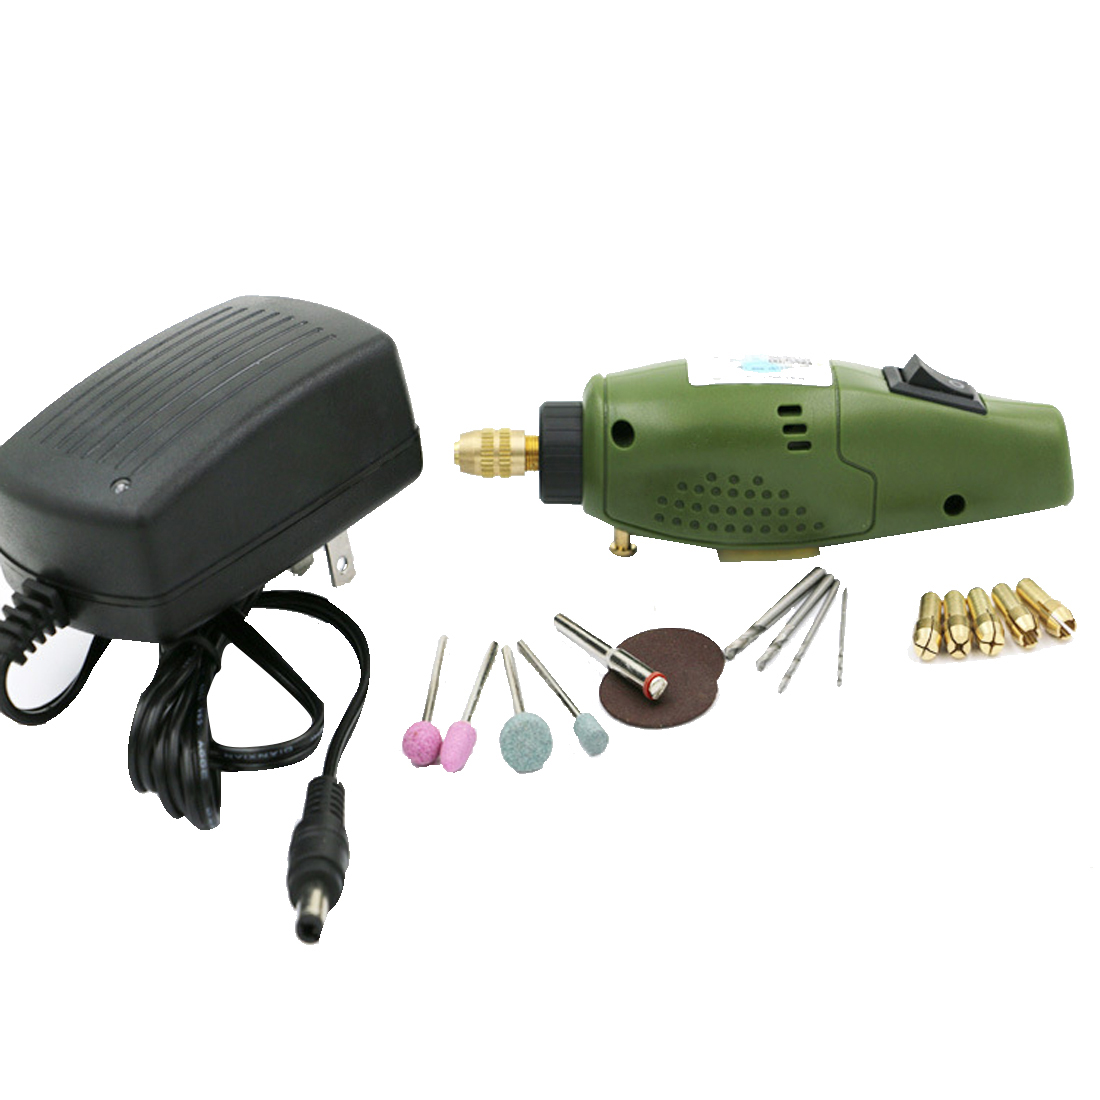 Electric grinder Mini Drill dremel Grinding Set 12V DC accessories Tool for Milling Polishing Drilling Cutting La Suite